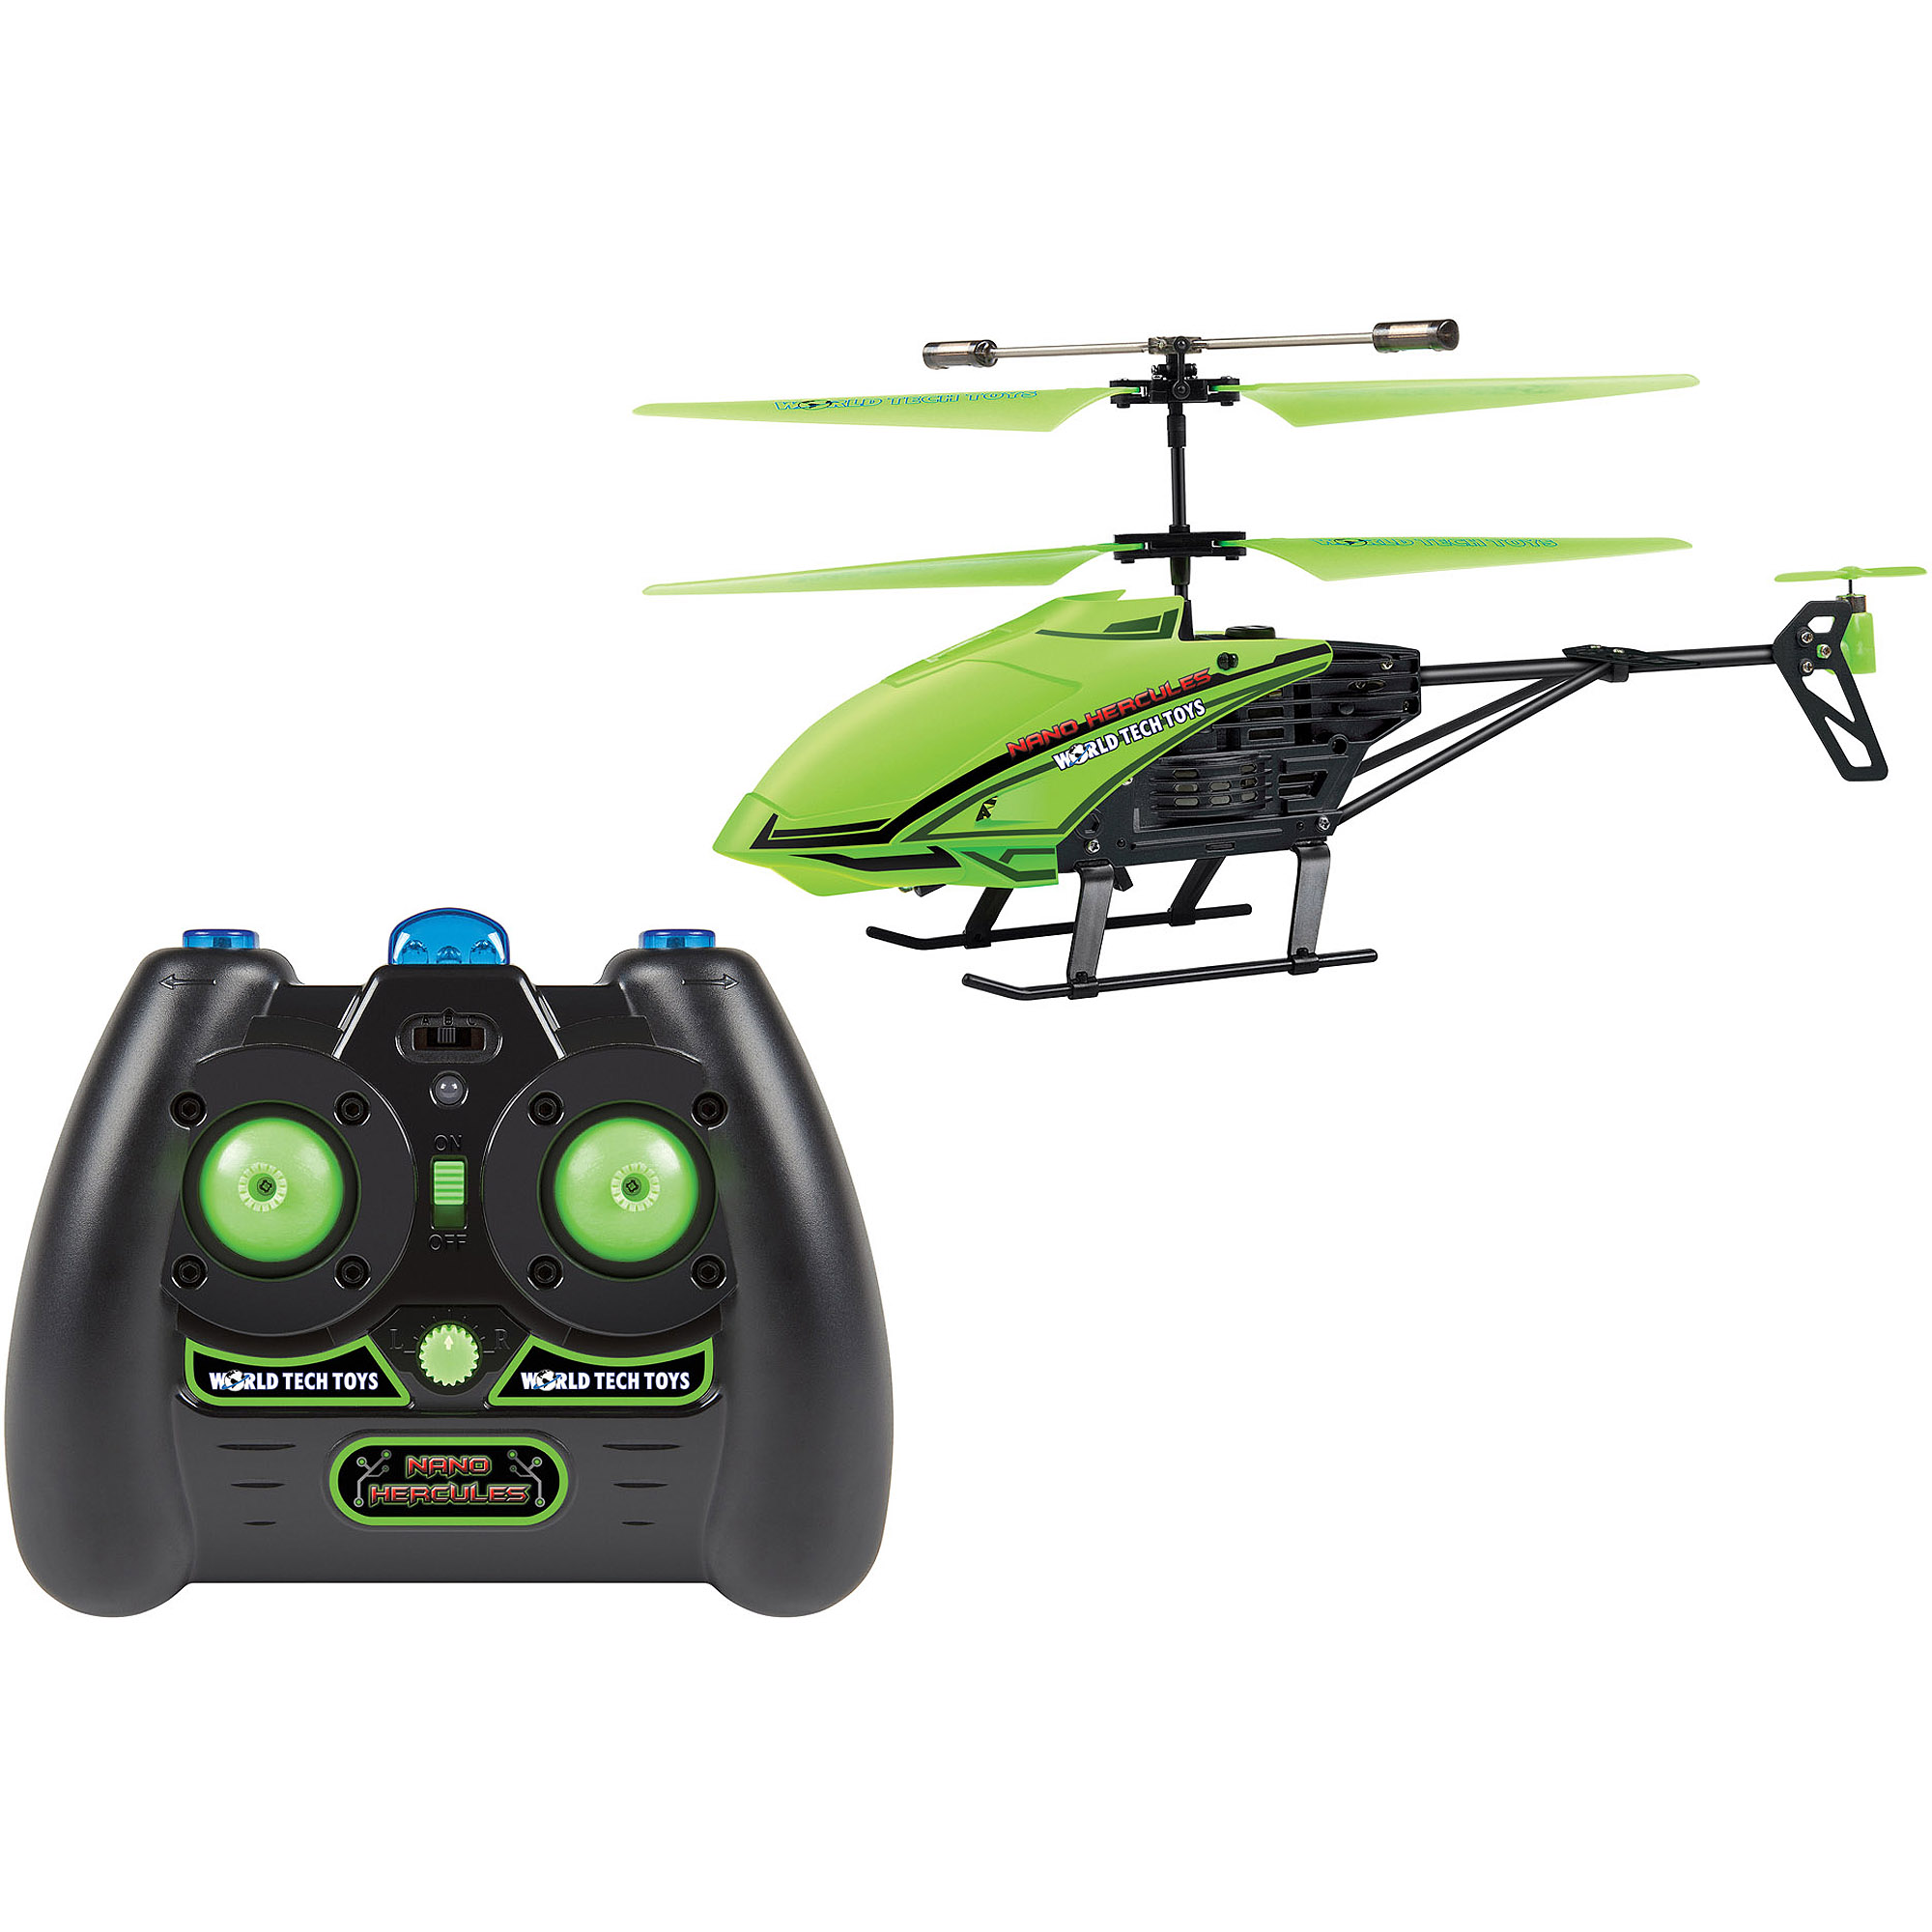 World Tech Toys 3.5CH Gyro Glow In Dark Nano Hercules IR Helicopter